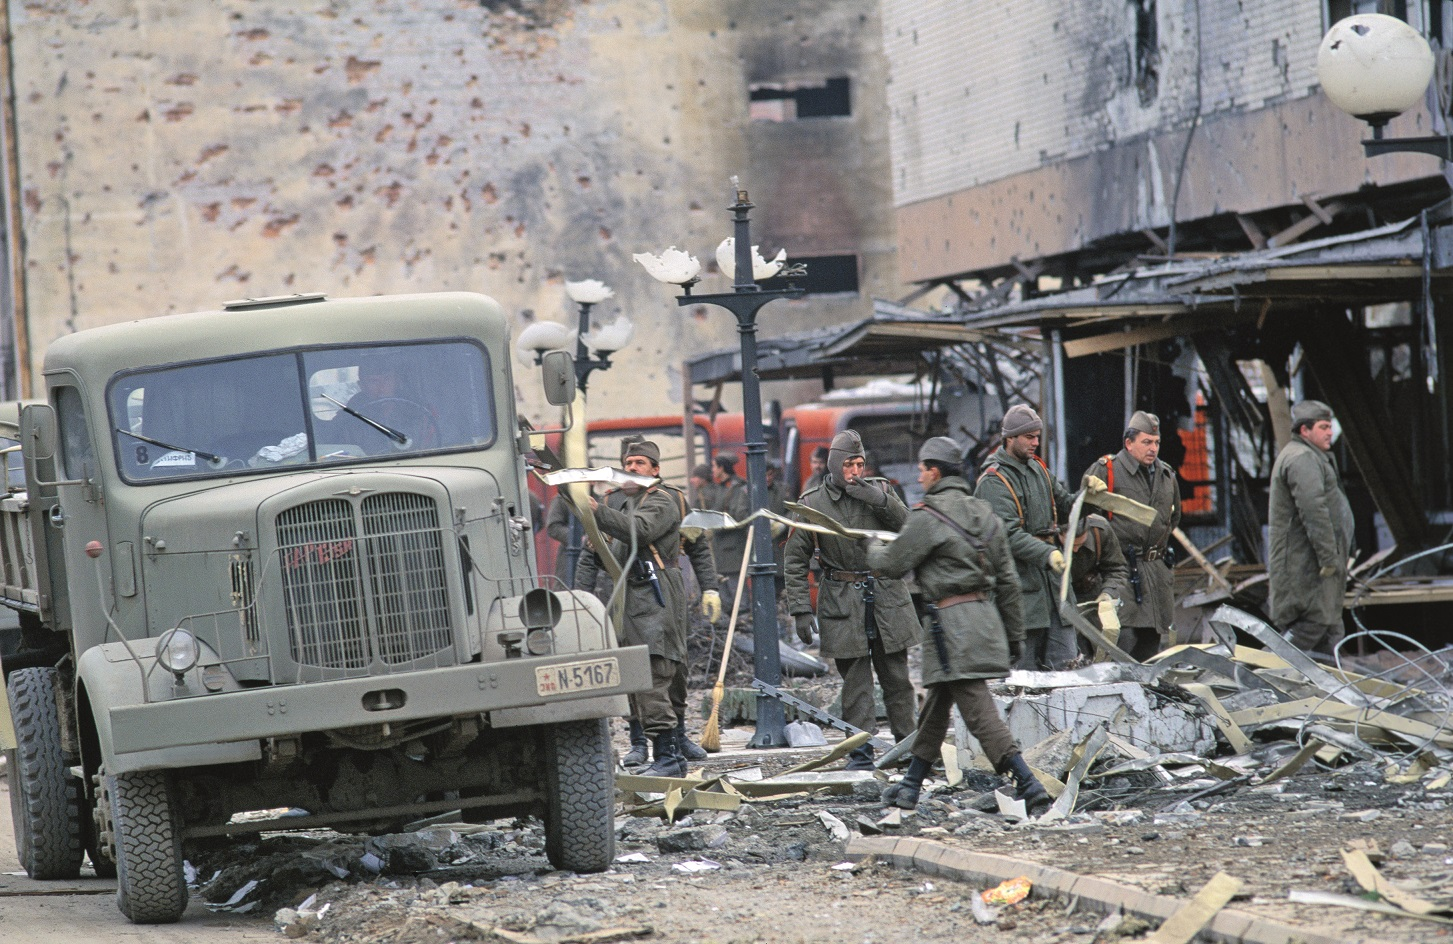 Yugoslavian soldiers remove rubble from the streets after fighting with the Serbian militia in Erdut during the Yugoslavian Civil War. In June of 1991, the territories Croatia and Slovenia declared independence from Yugoslavia, sparking years of violent civil war that killed over 200,000 people and displaced nearly two million. (Photo by Antoine GYORI/Sygma via Getty Images)